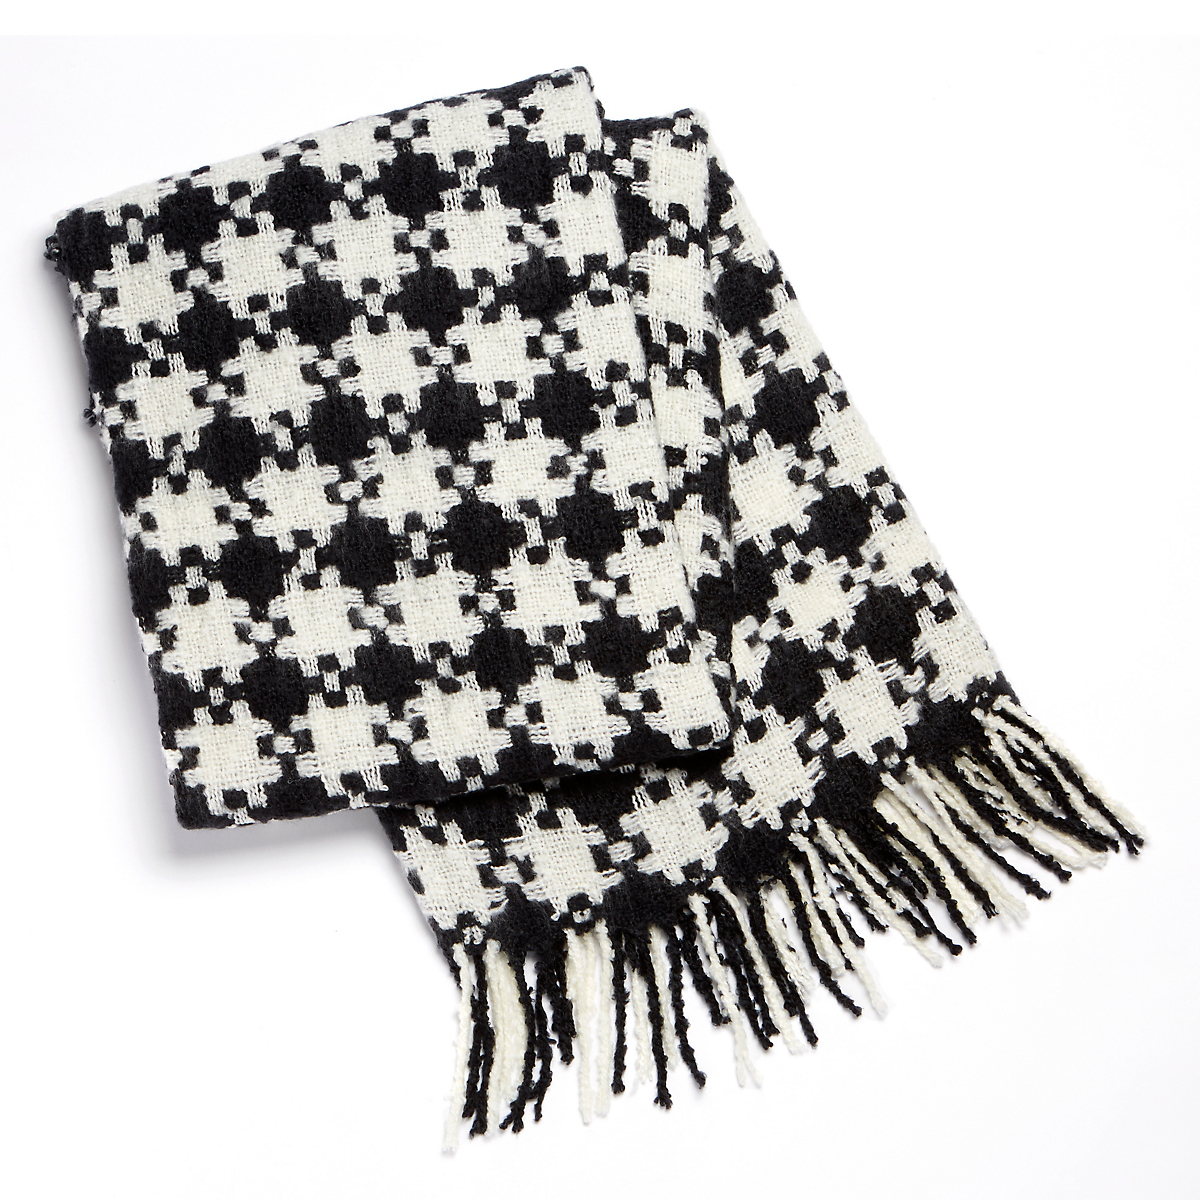 Black & White Houndstooth Throw